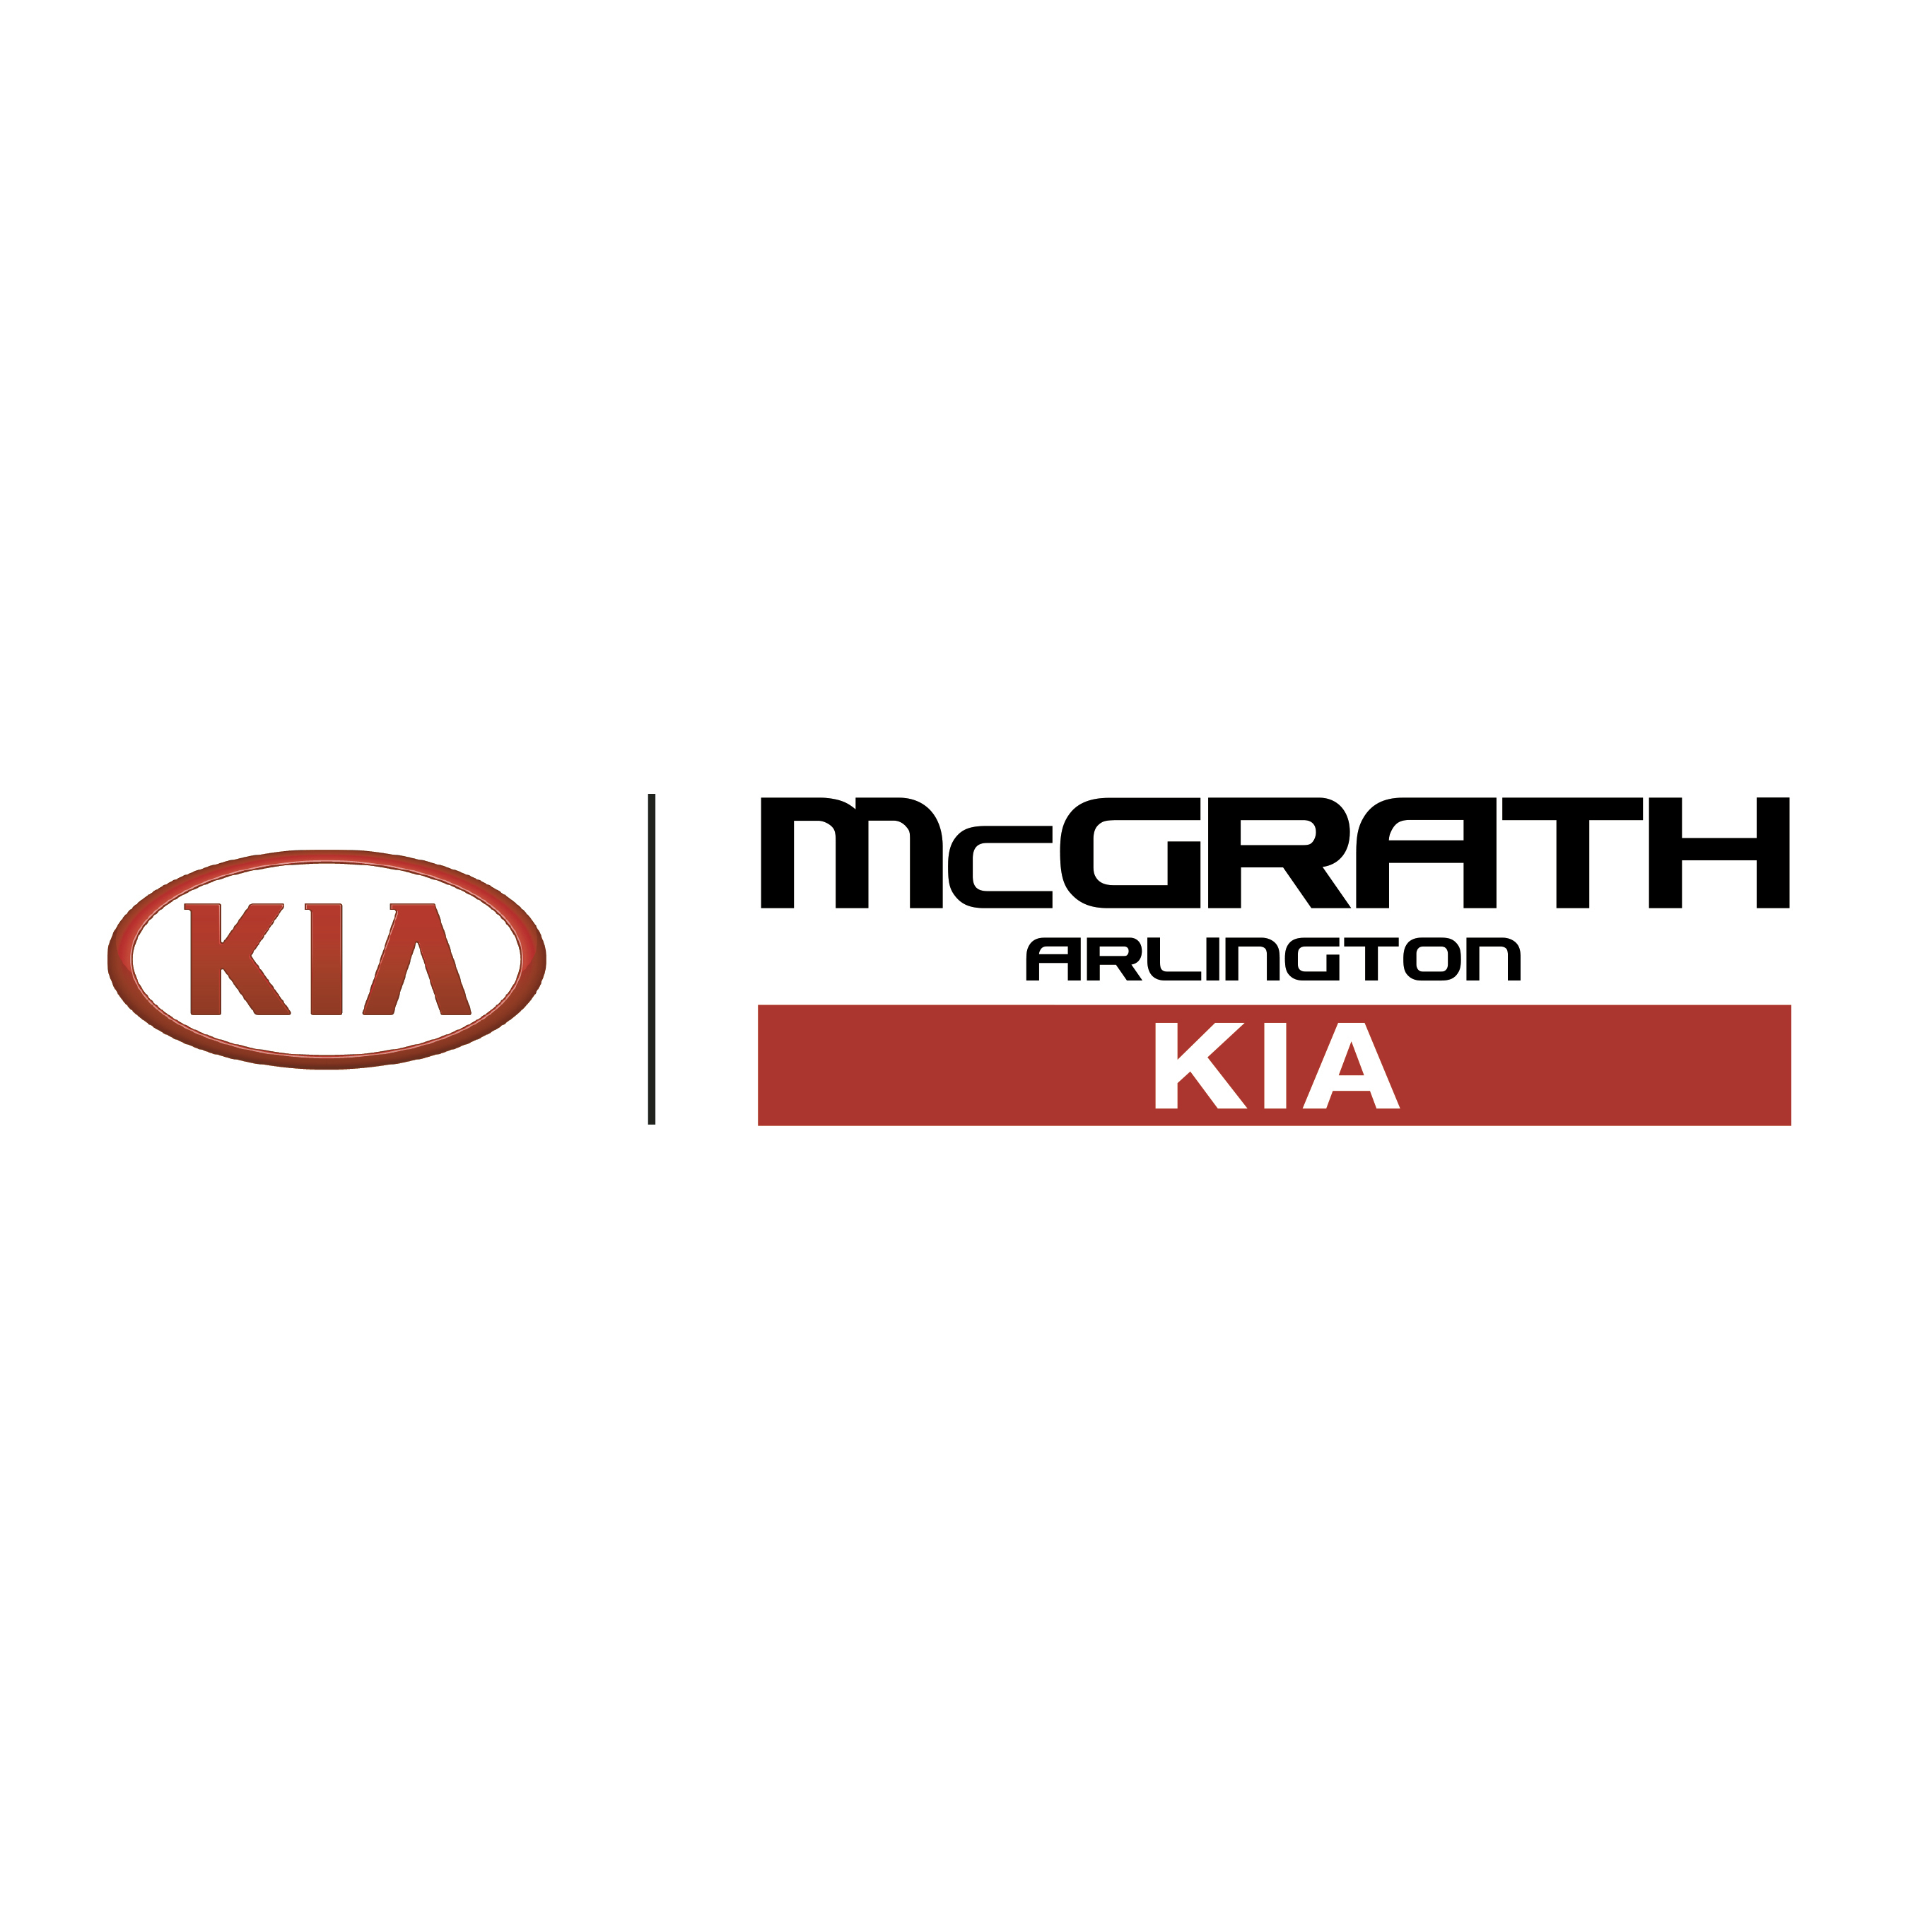 McGrath Arlington Kia